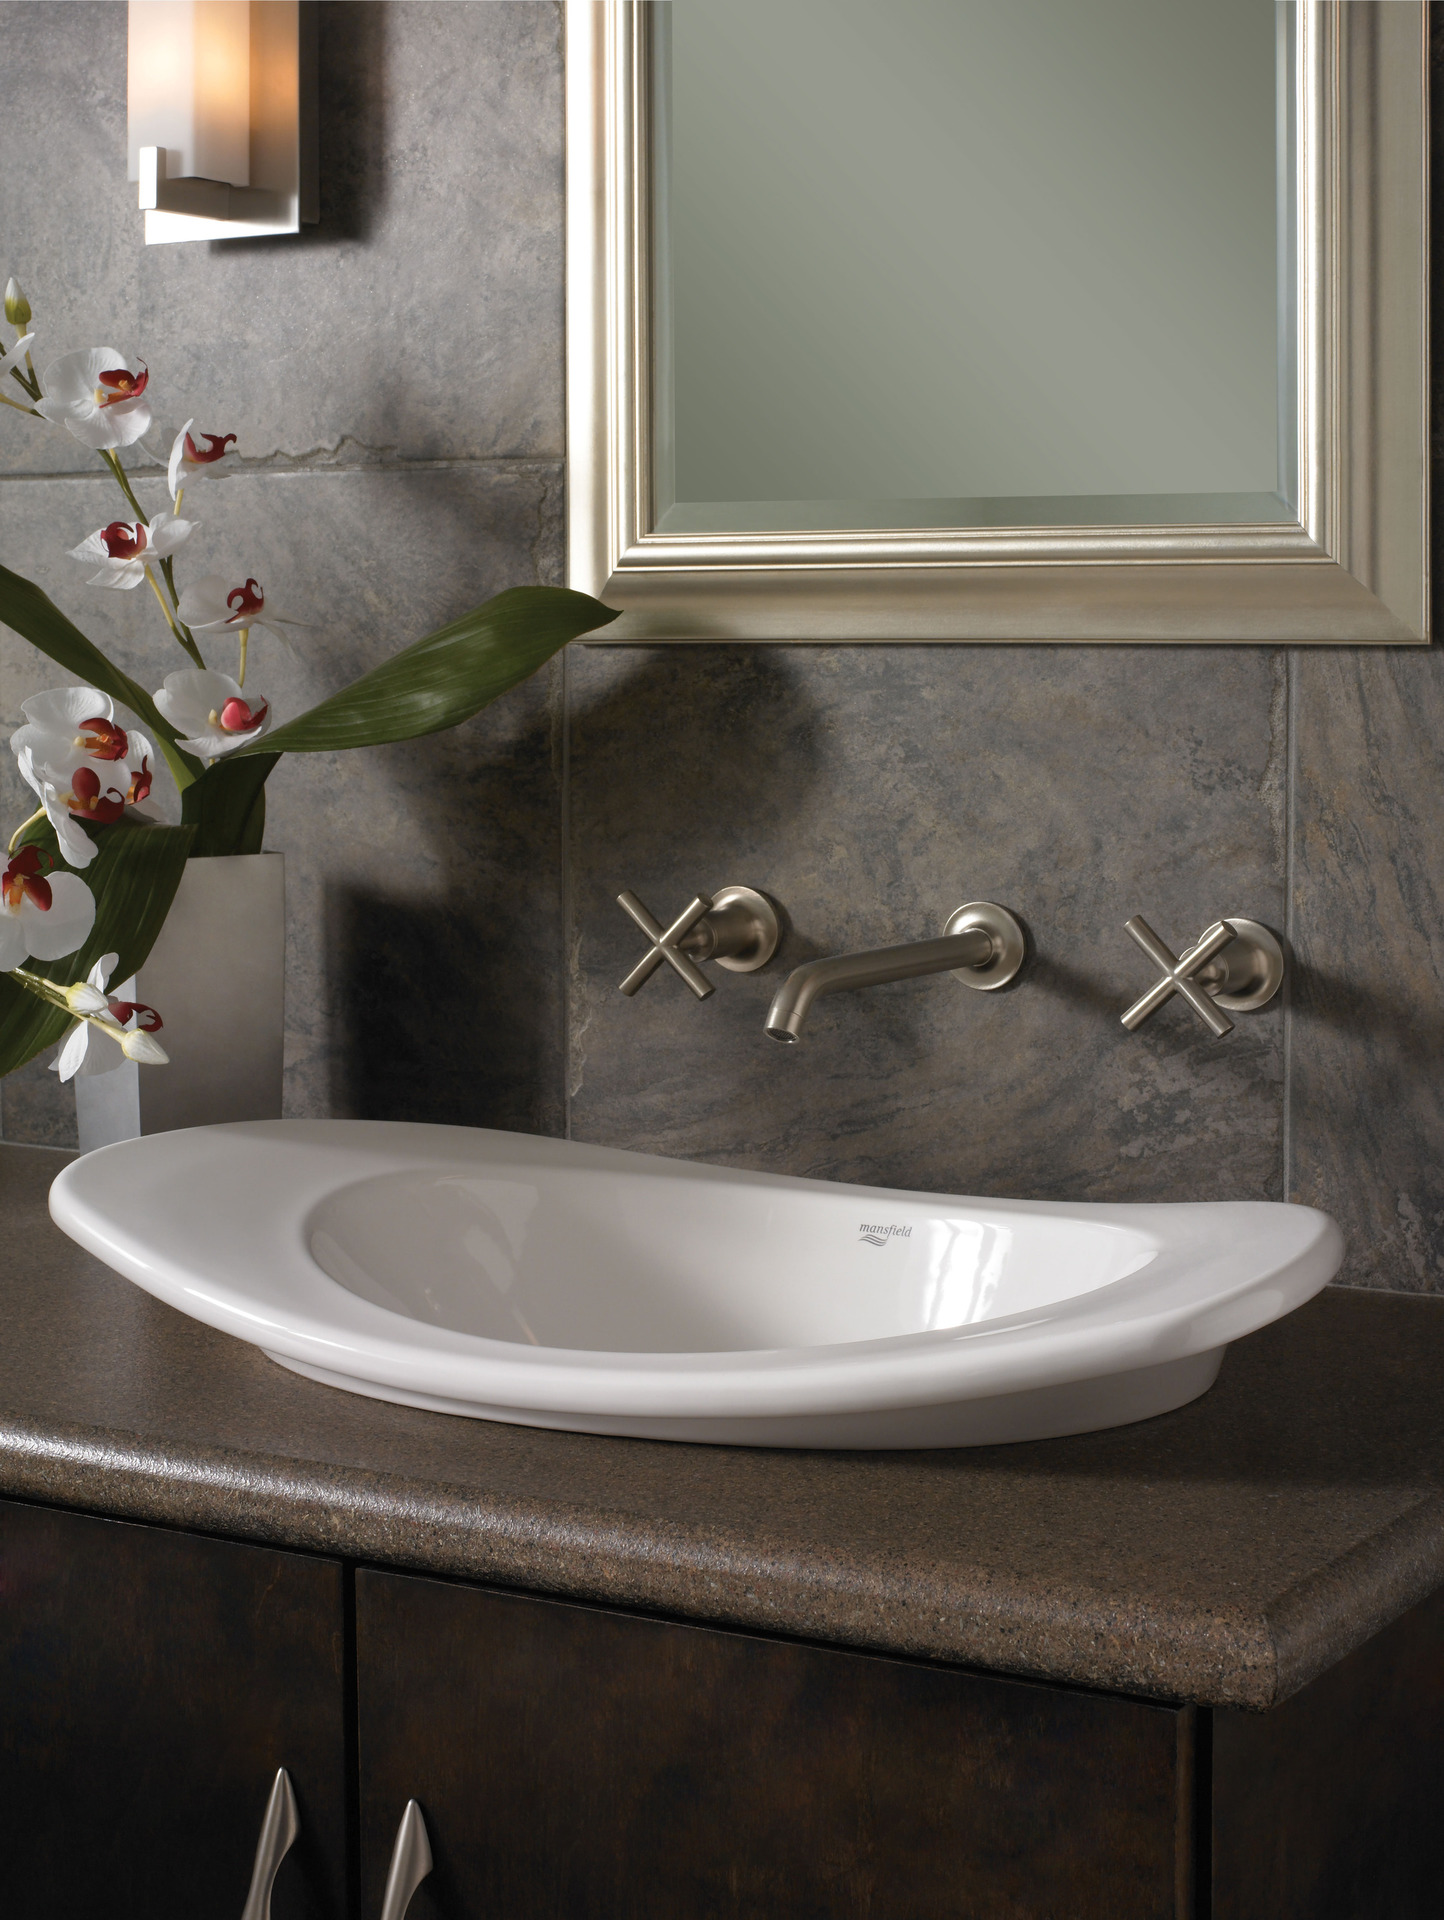 Attirant Finally, The Waverly Lav Offers Clean, Crisp Lines In A Traditional  English Inspired Design For Both Its Pedestal And Drop In Sinks.